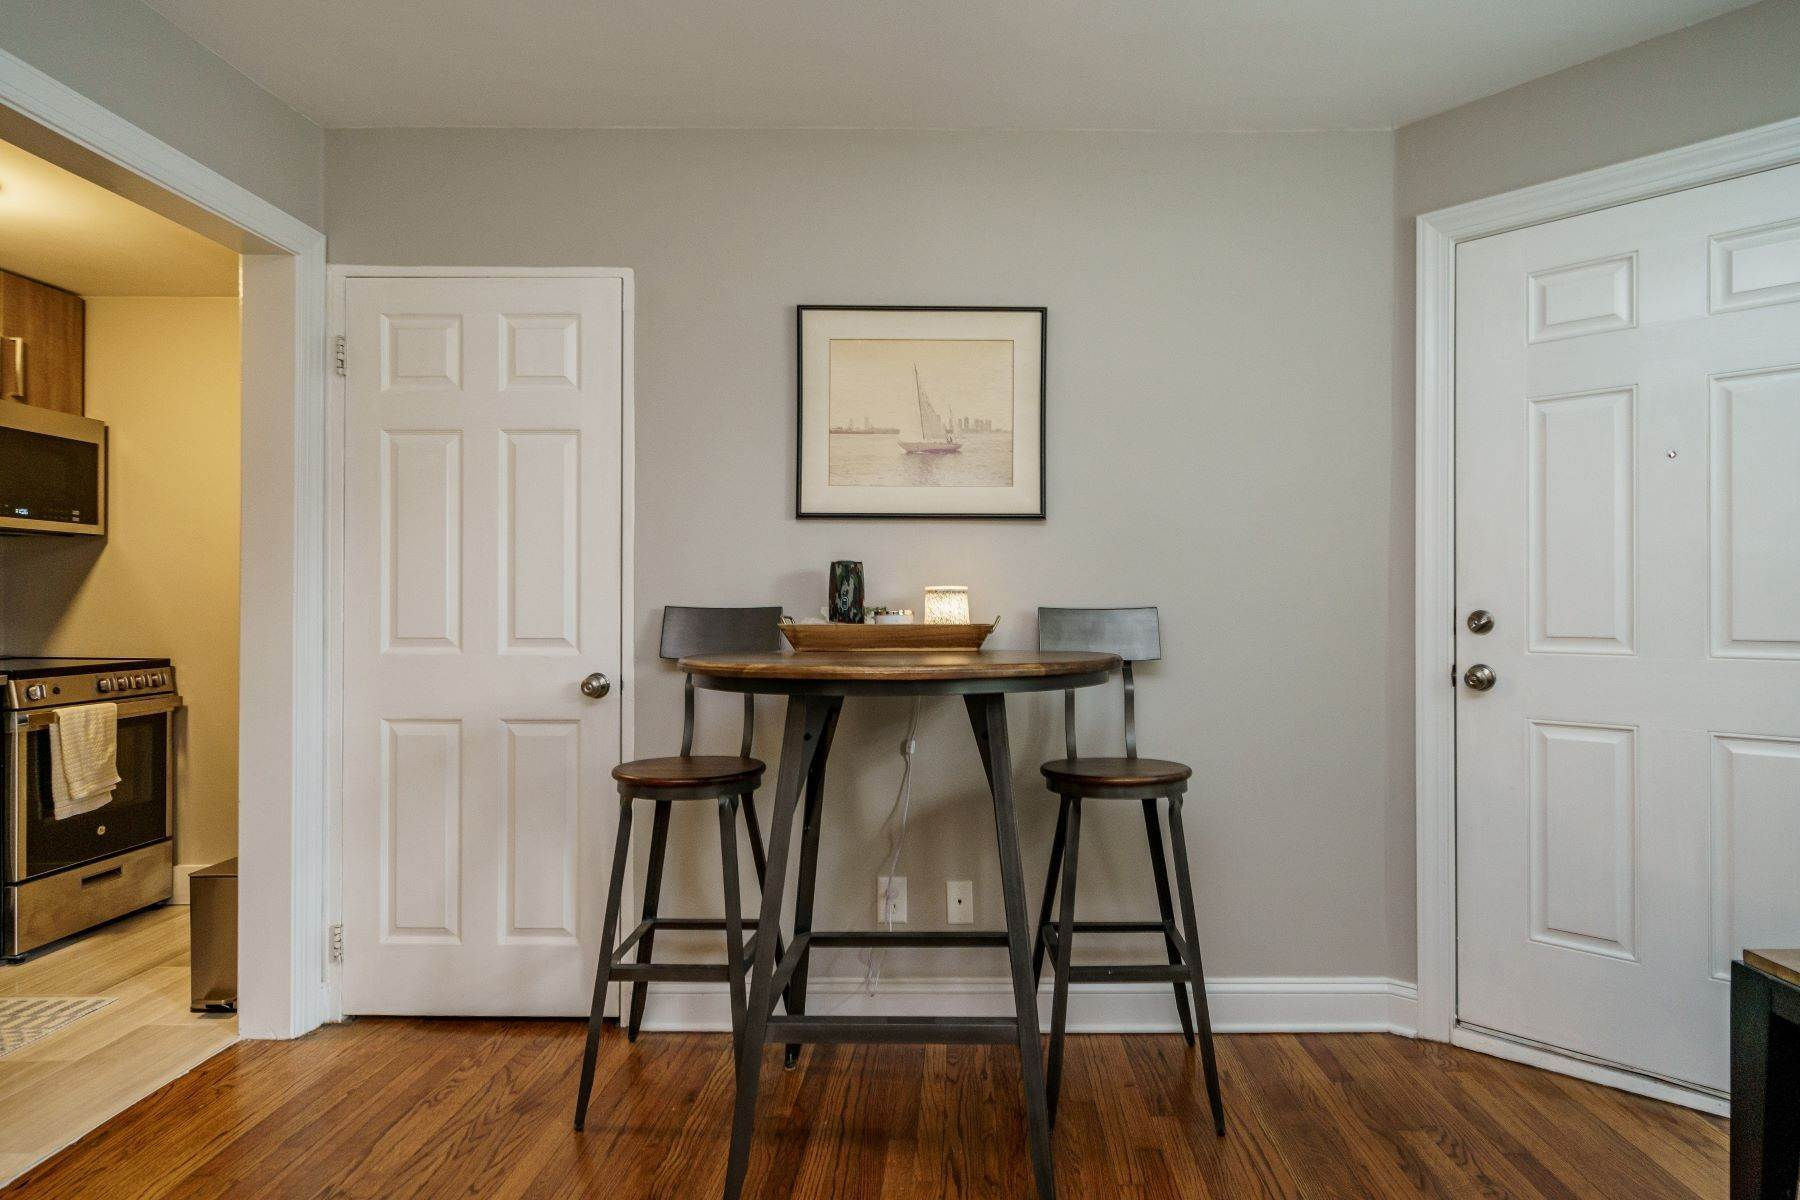 6. Condominiums for Sale at 979 St. Mary's St Unit A Raleigh, North Carolina 27605 United States